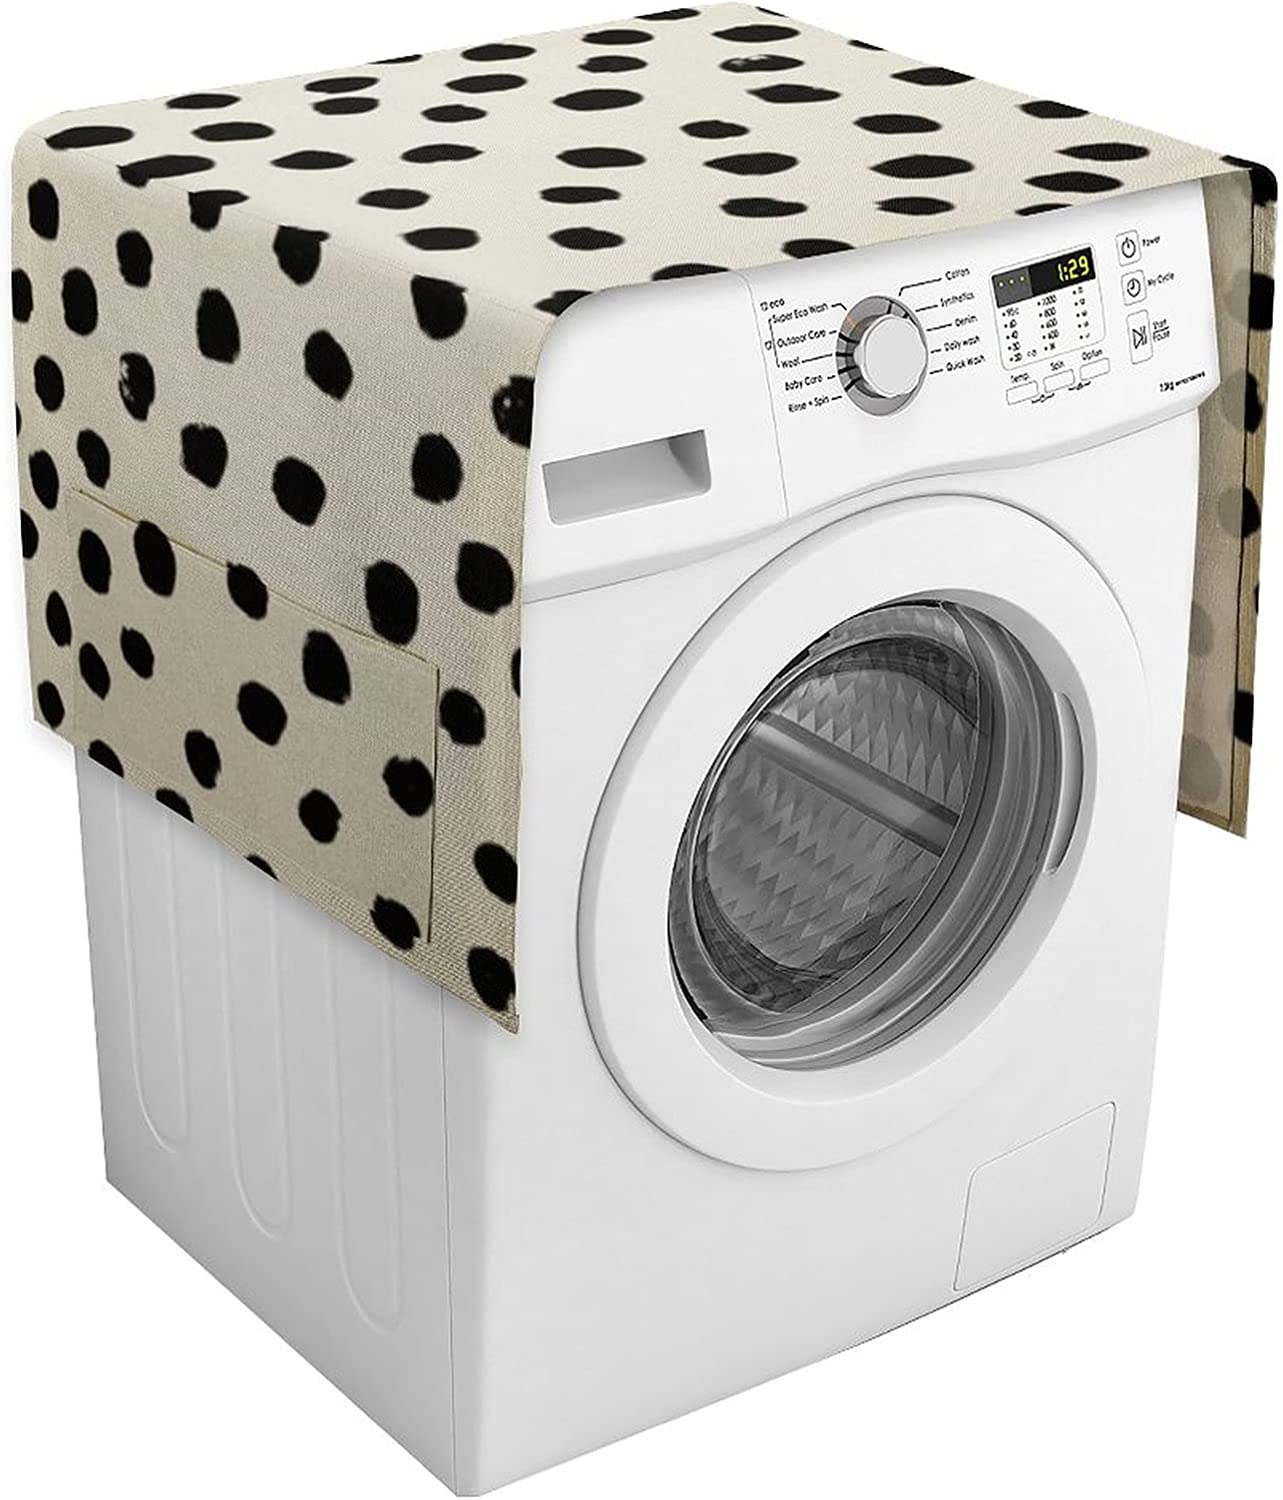 Multi-Purpose Washing Machine Covers Washer Appliance Protector Today's only Boston Mall